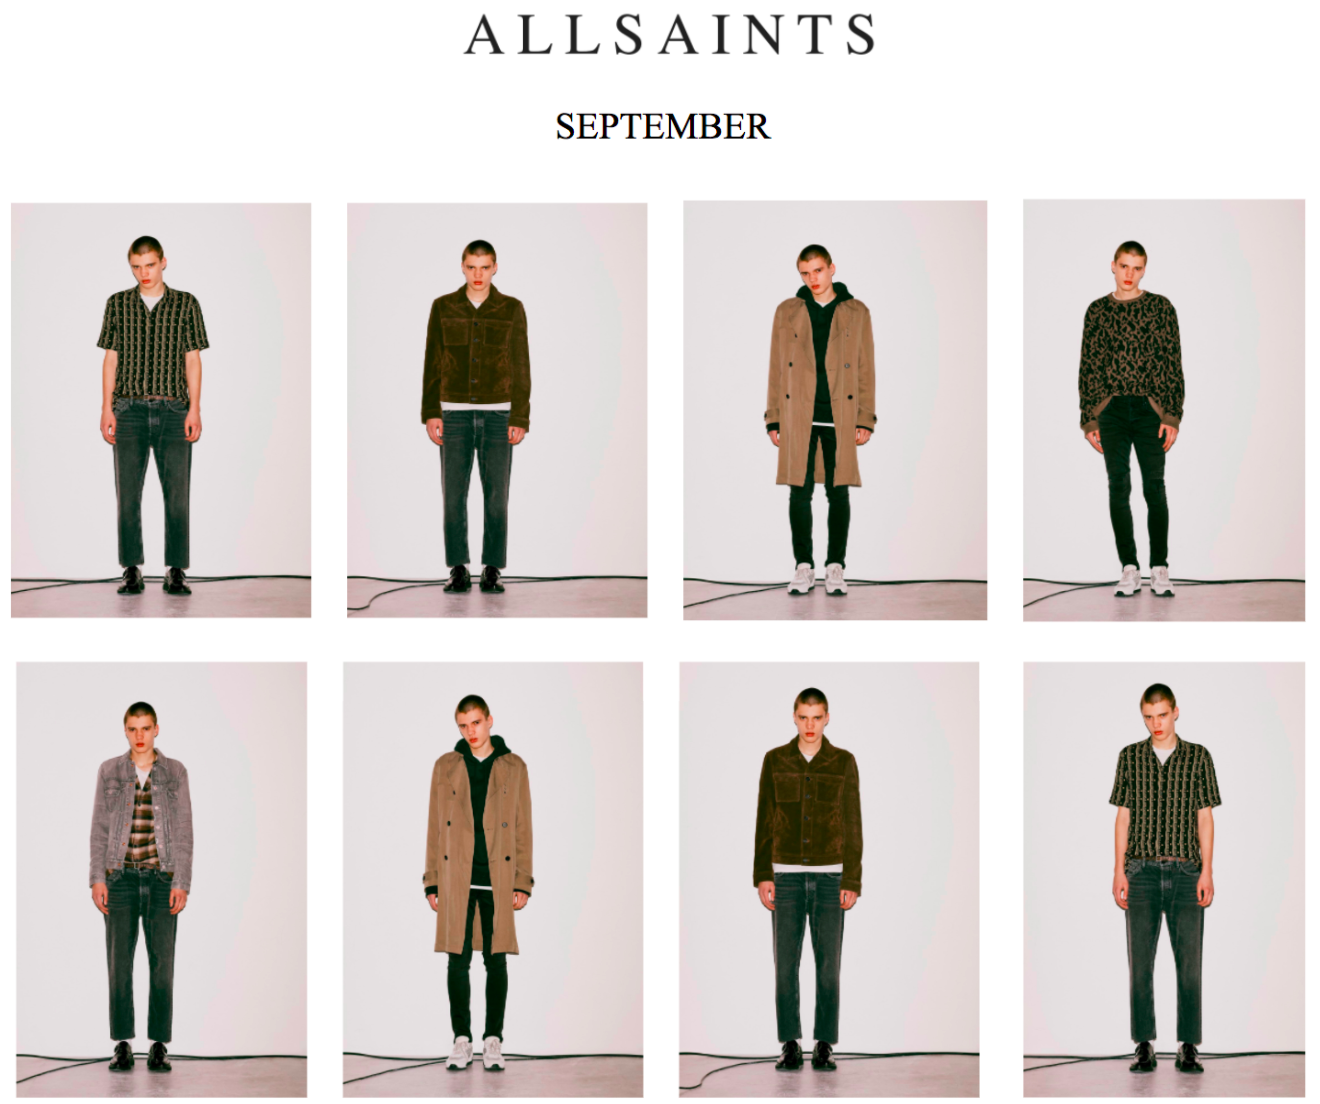 All Saints Release September/October Lookbook